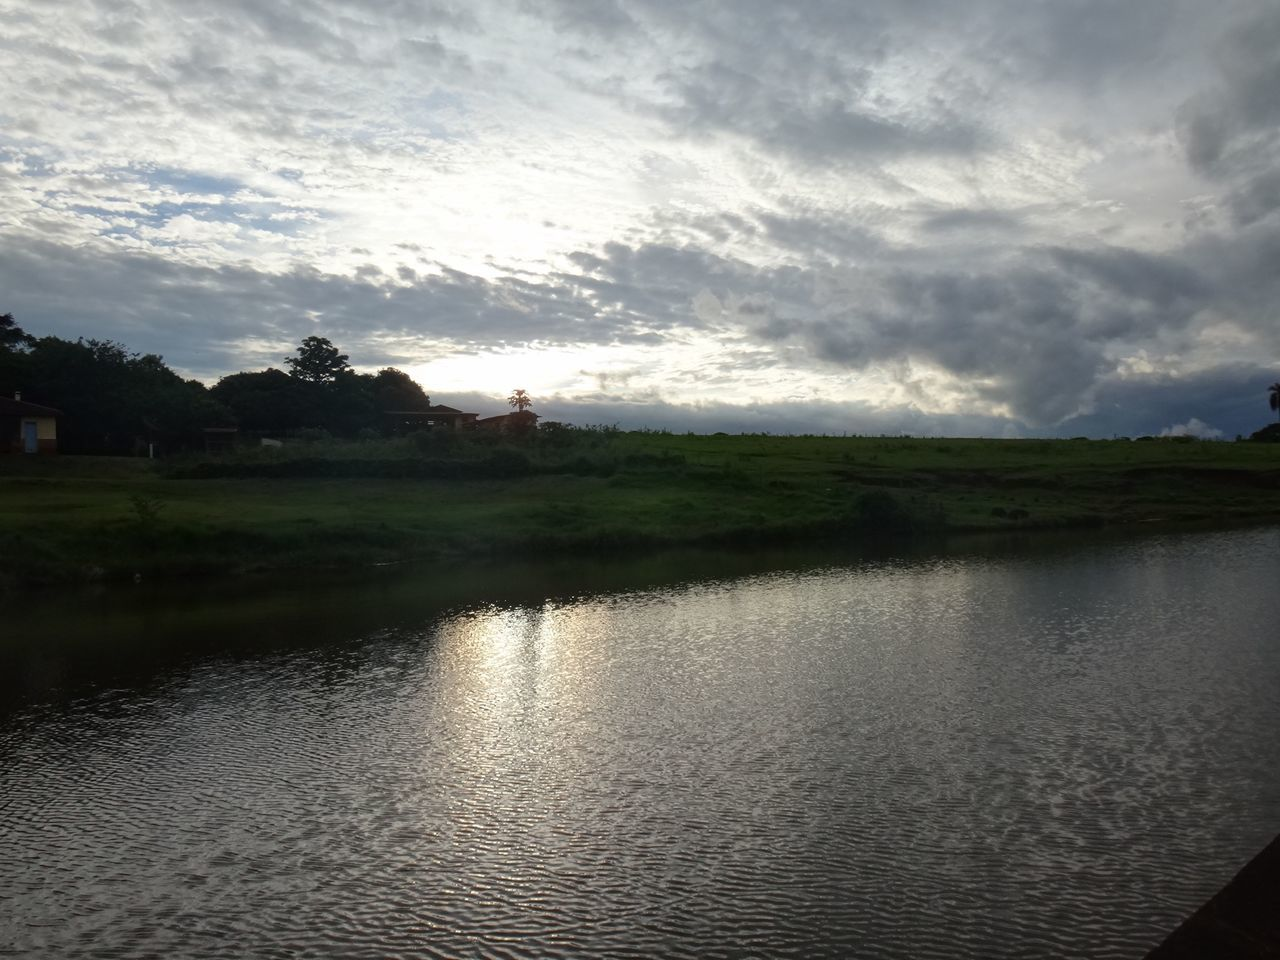 water, sky, river, nature, tranquility, no people, tranquil scene, landscape, cloud - sky, scenics, reflection, outdoors, beauty in nature, day, tree, architecture